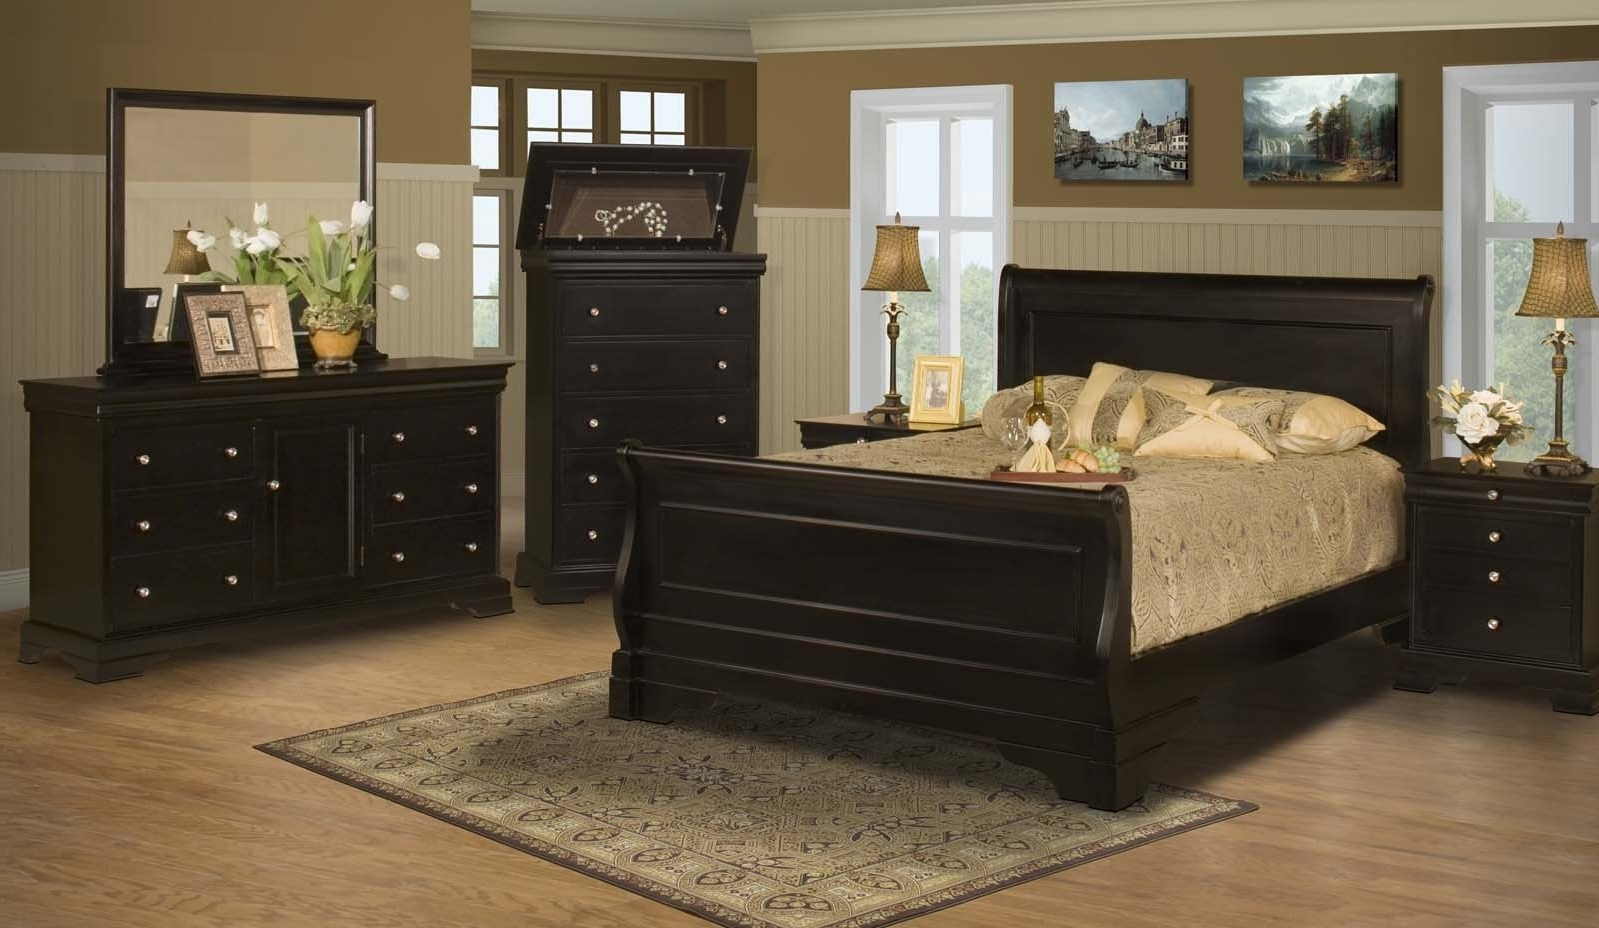 Stratford Sofas Within Popular Stratford Black Cherry Bedroom Furniture Collection For $ (View 12 of 15)